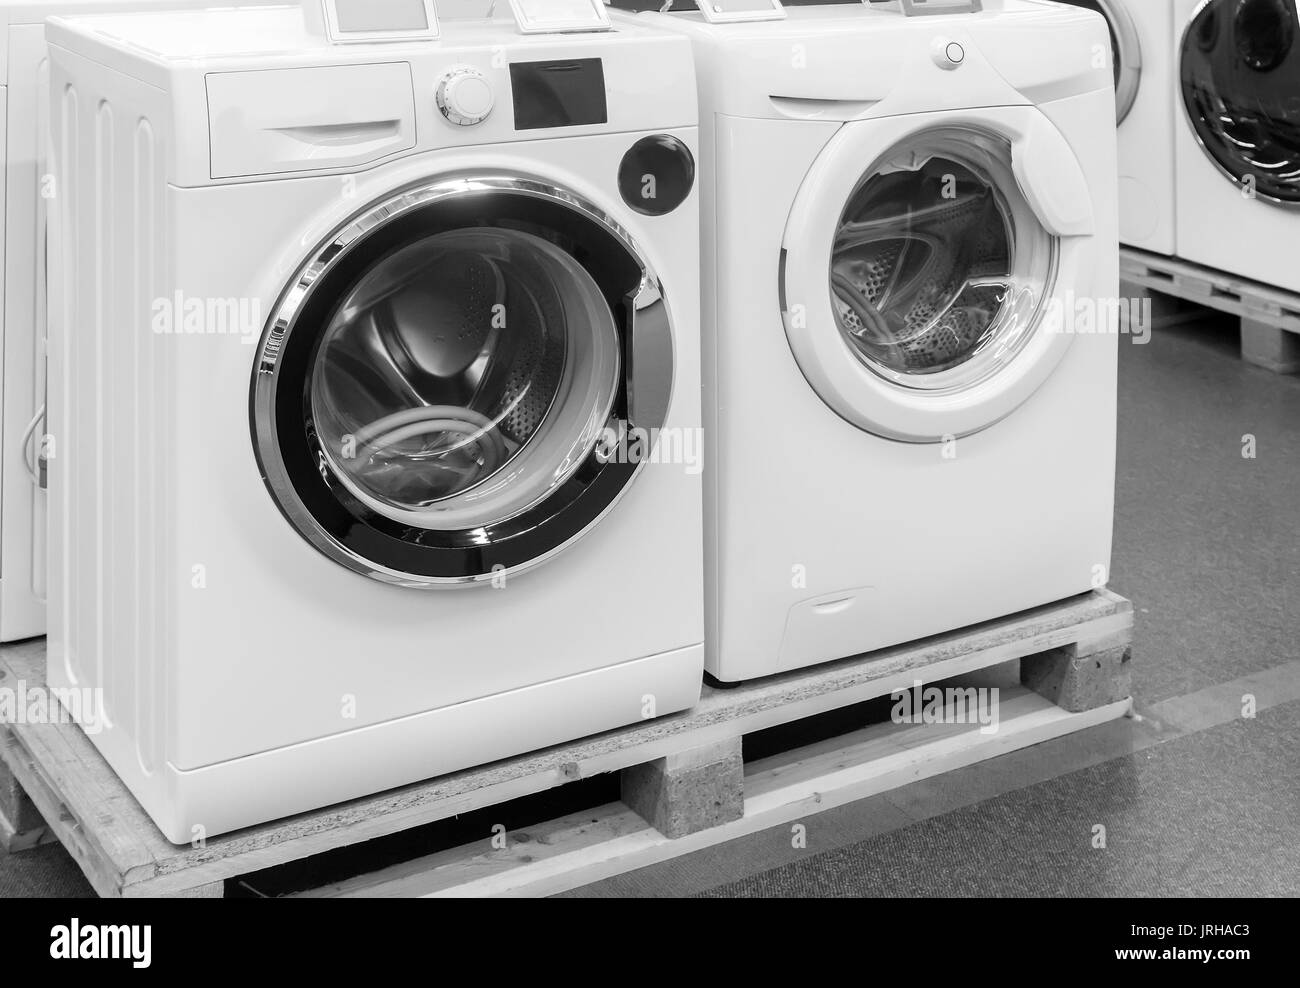 appliances store presents for sale a modern washing machine